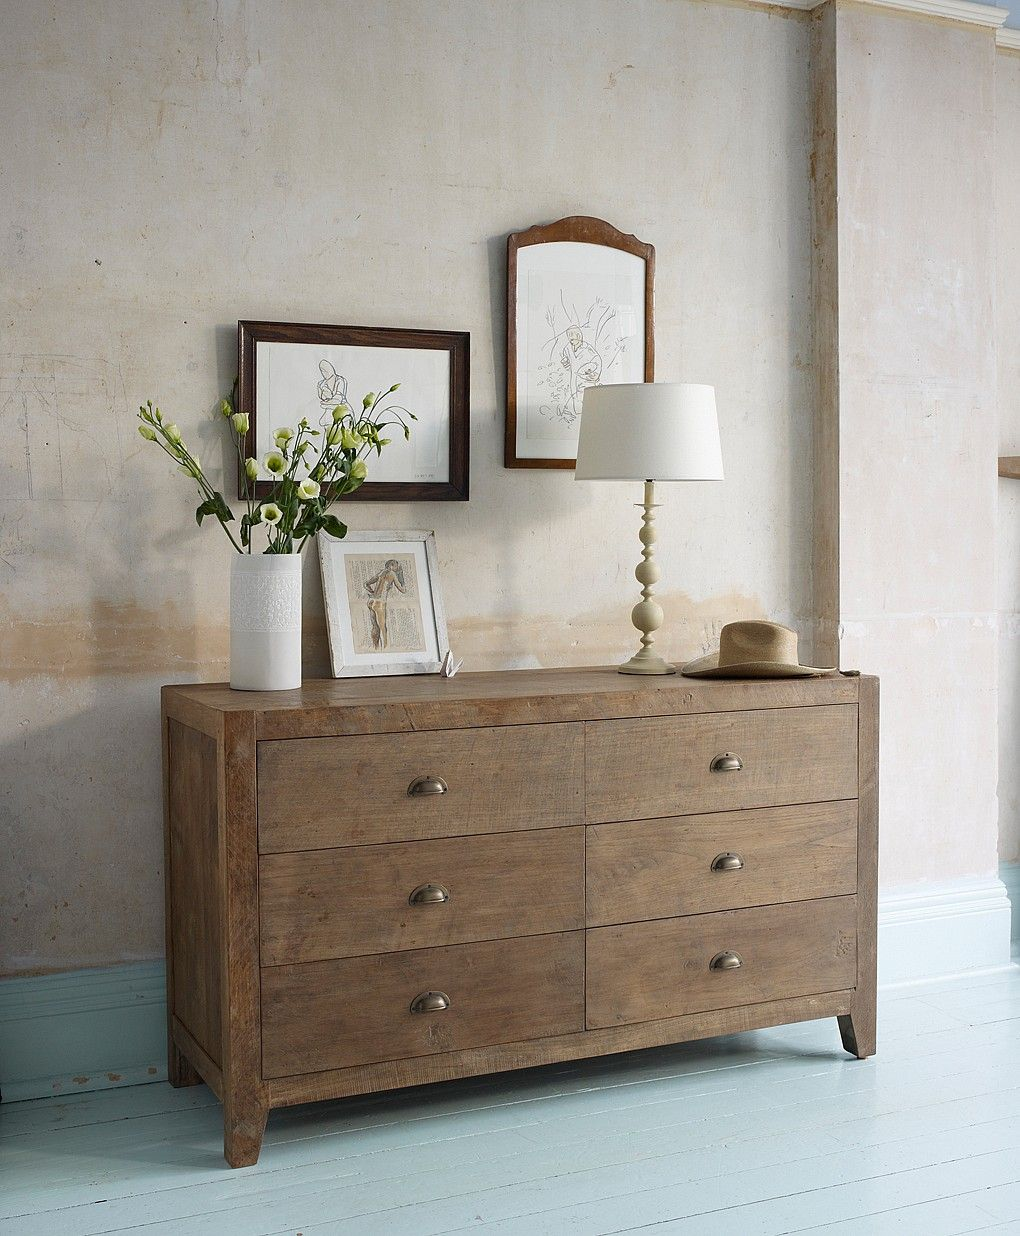 Sumatra Large Chest of Wooden Drawers from Lombok